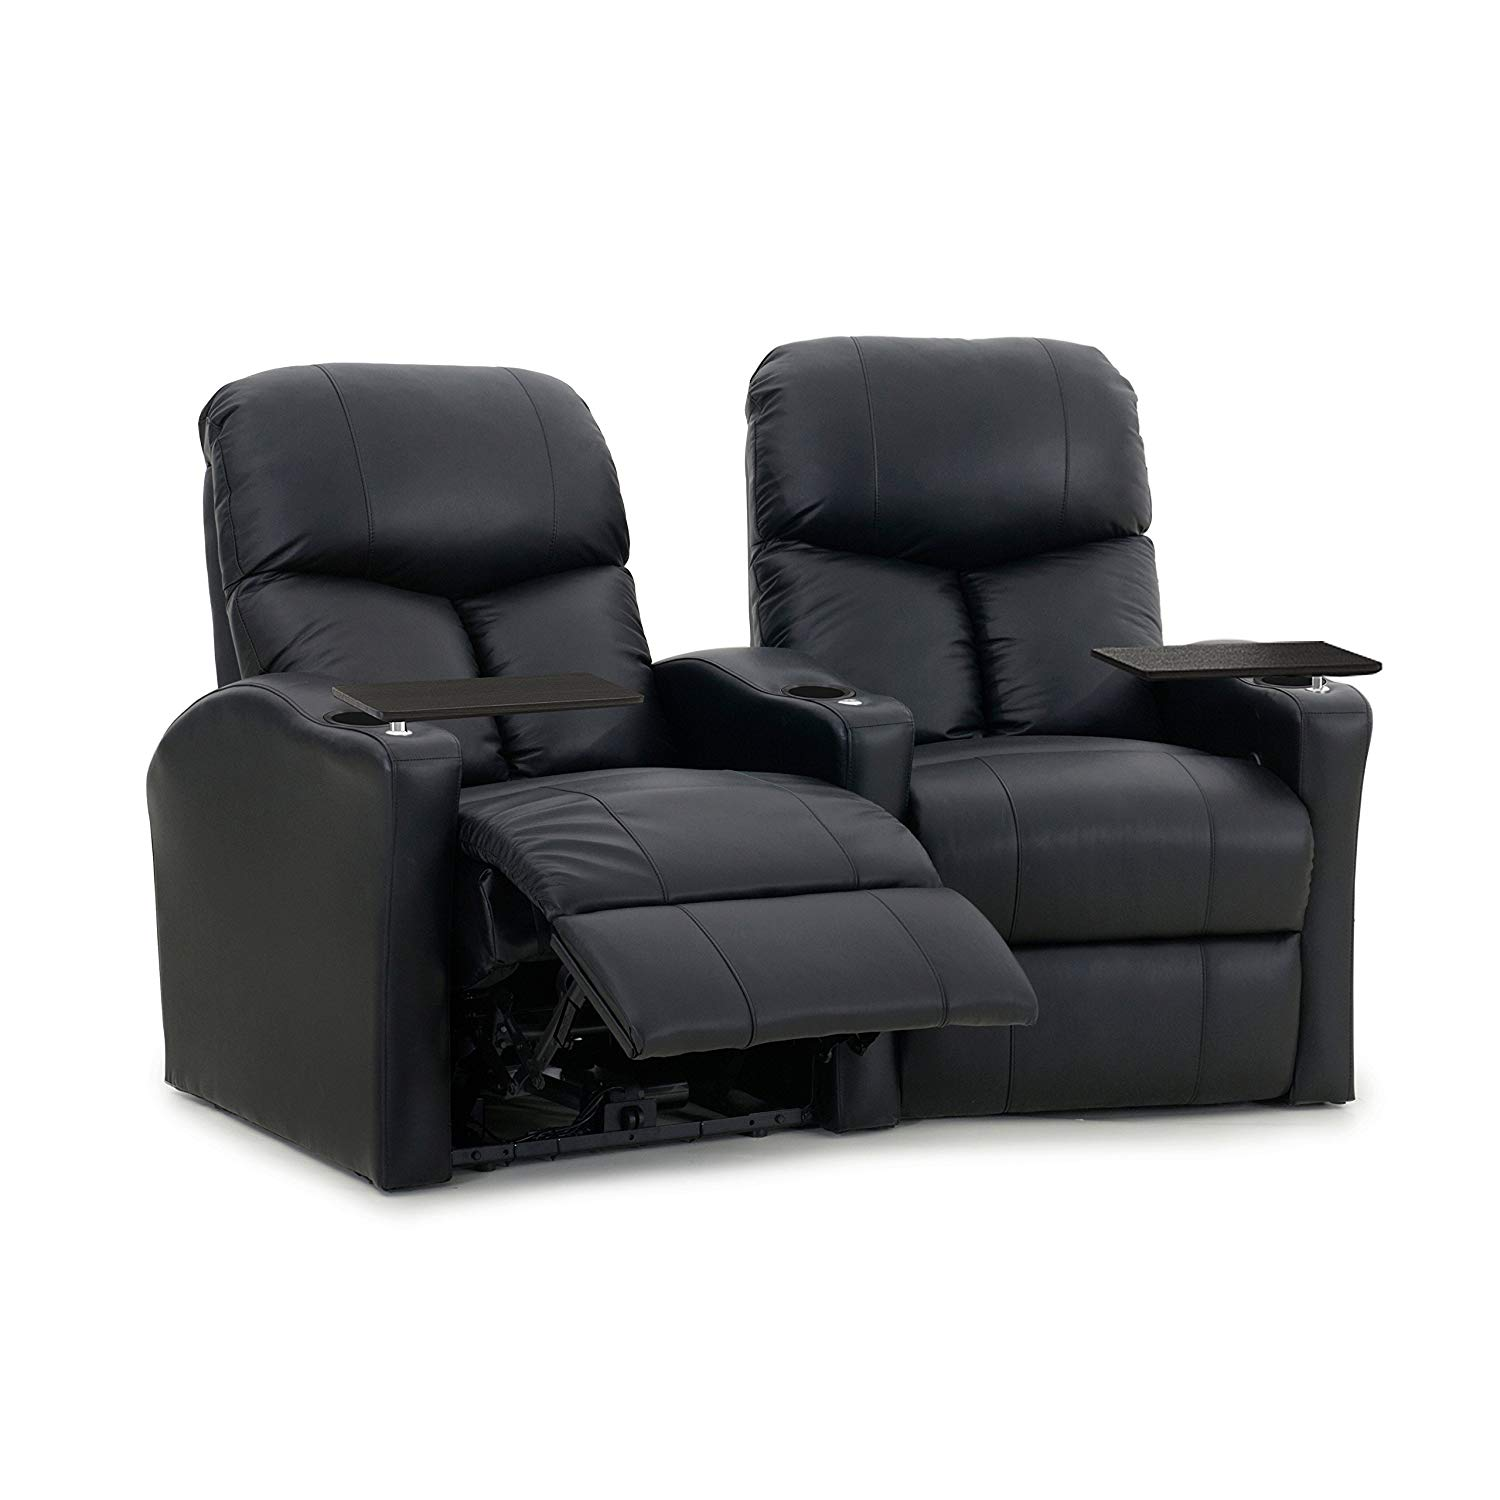 Octane Bolt XS400 Power Leather Home Theater Seating Set (Row of 2)